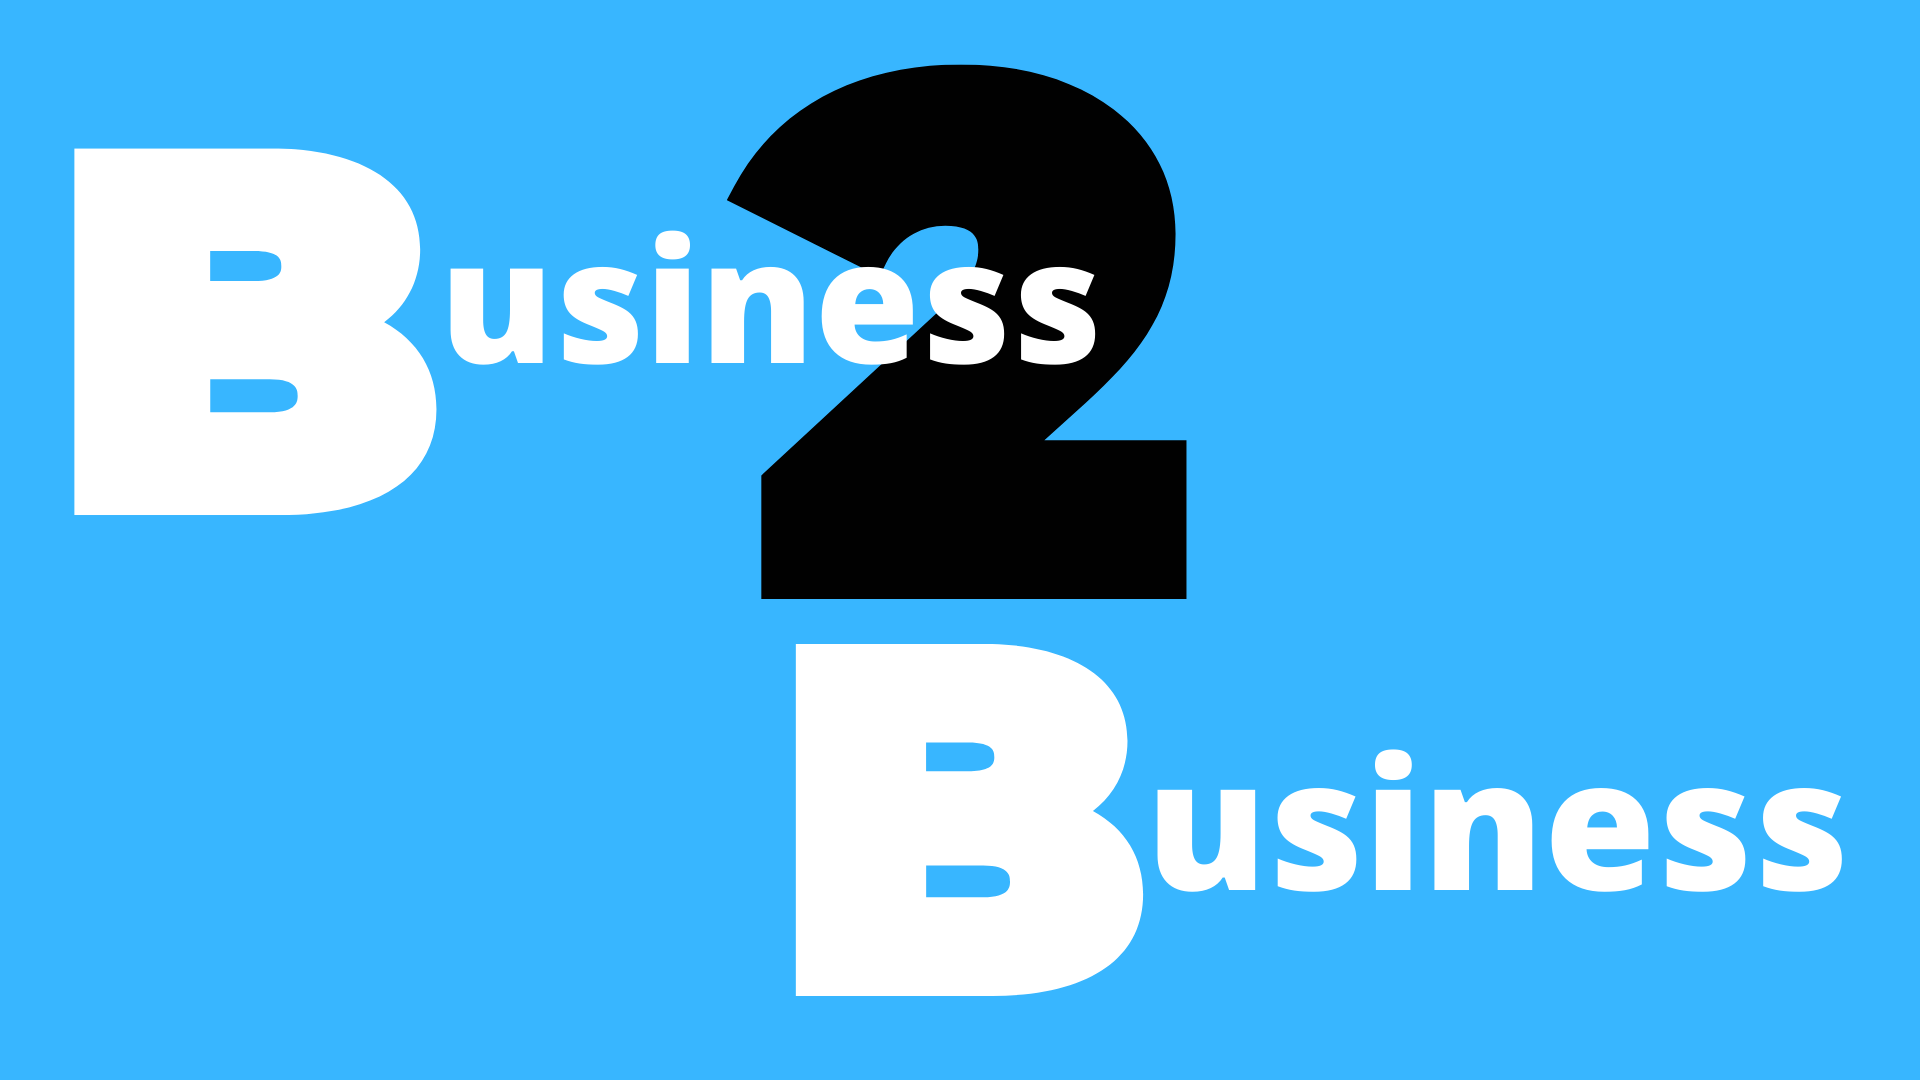 eCommerce business to business